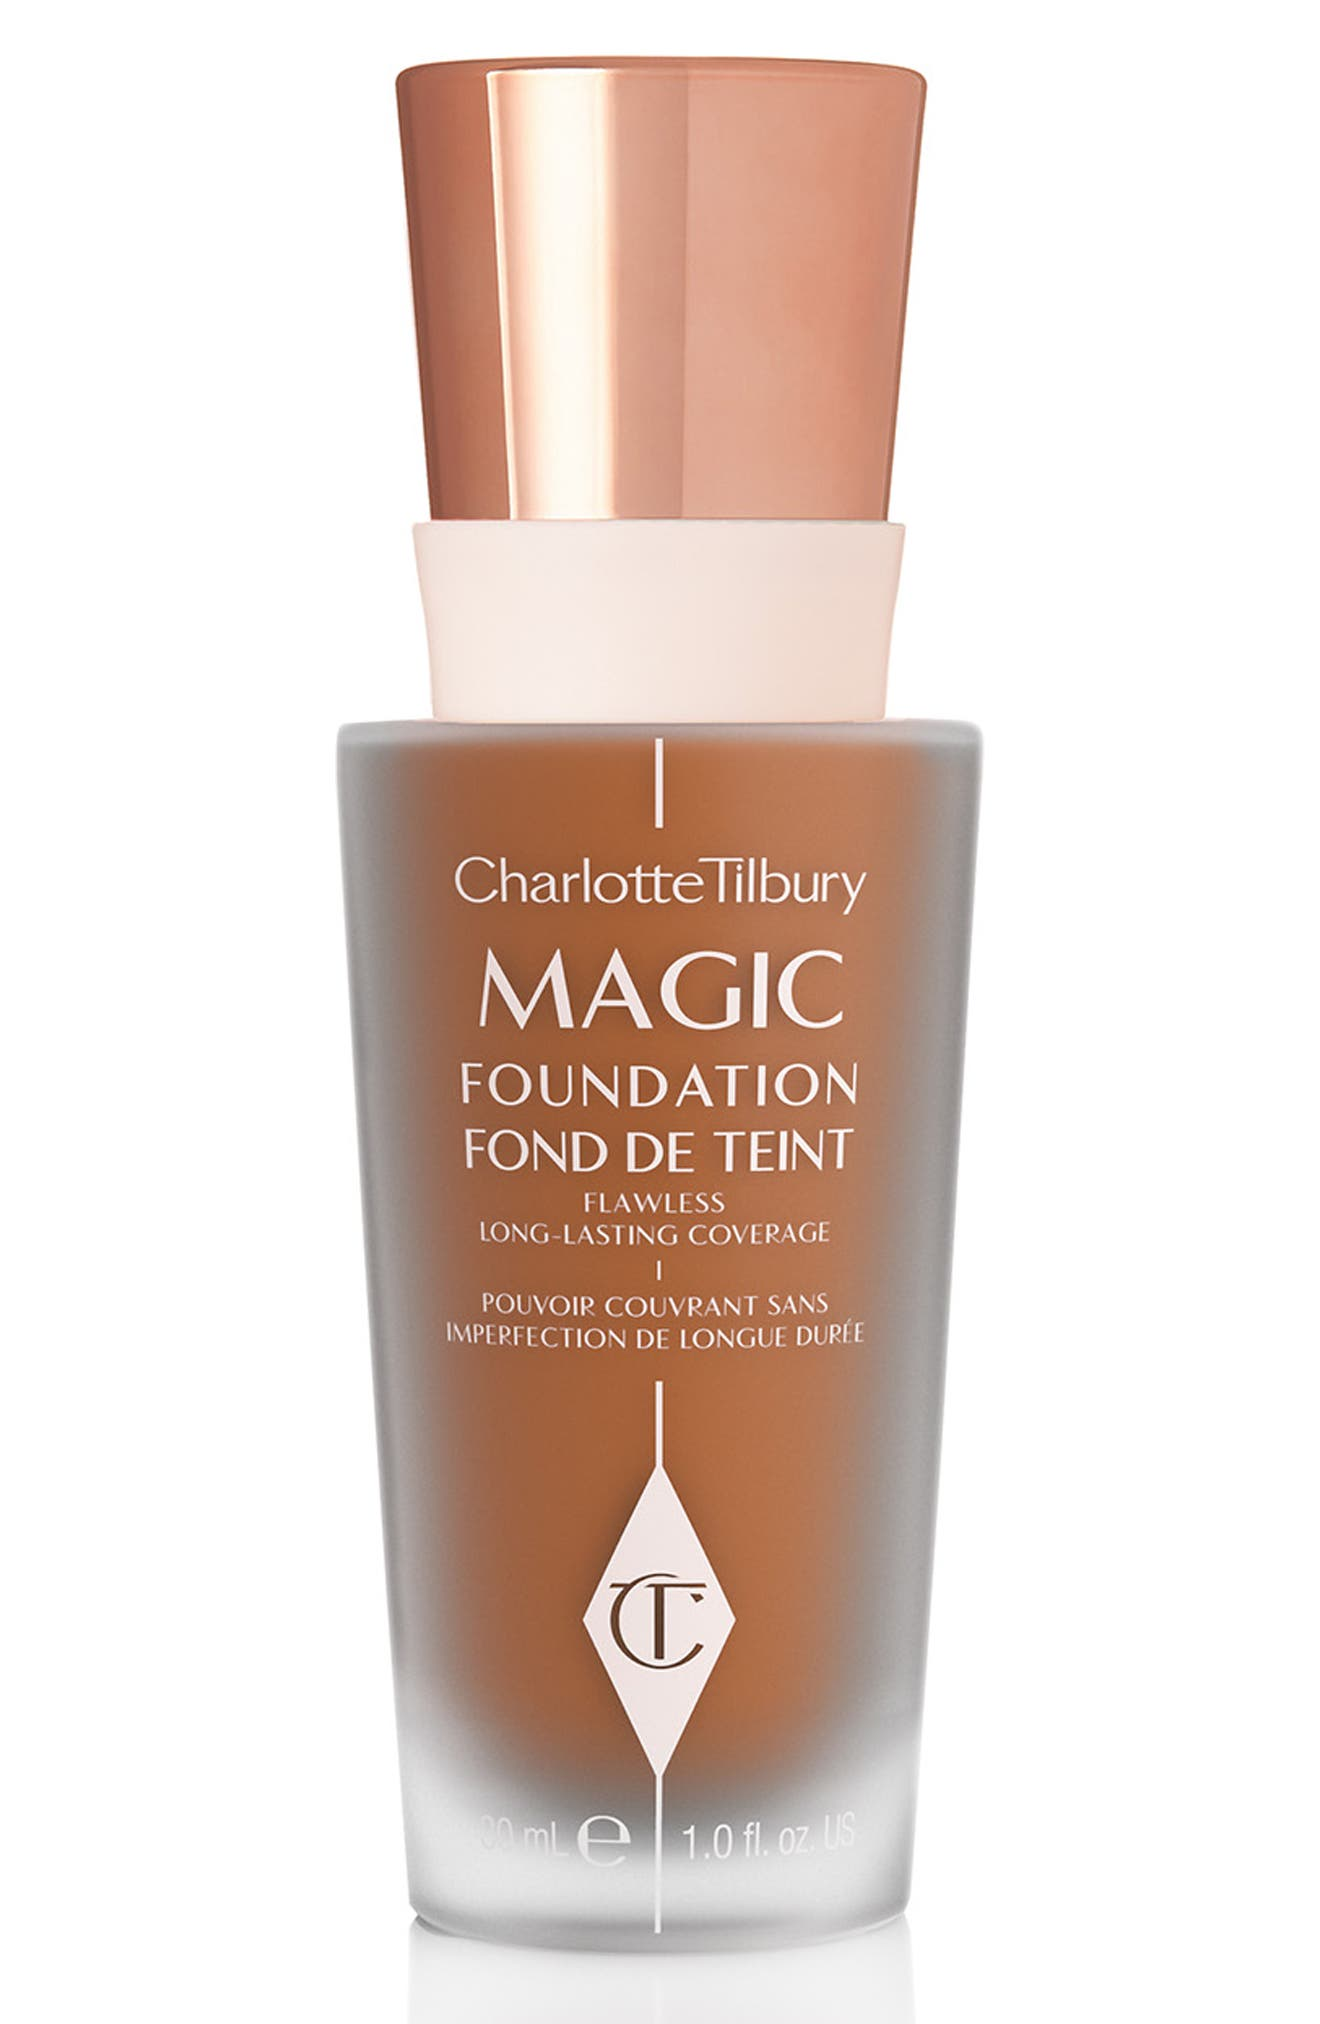 CHARLOTTE TILBURY MAGIC FOUNDATION BROAD SPECTRUM SPF 15 - 10 DARK